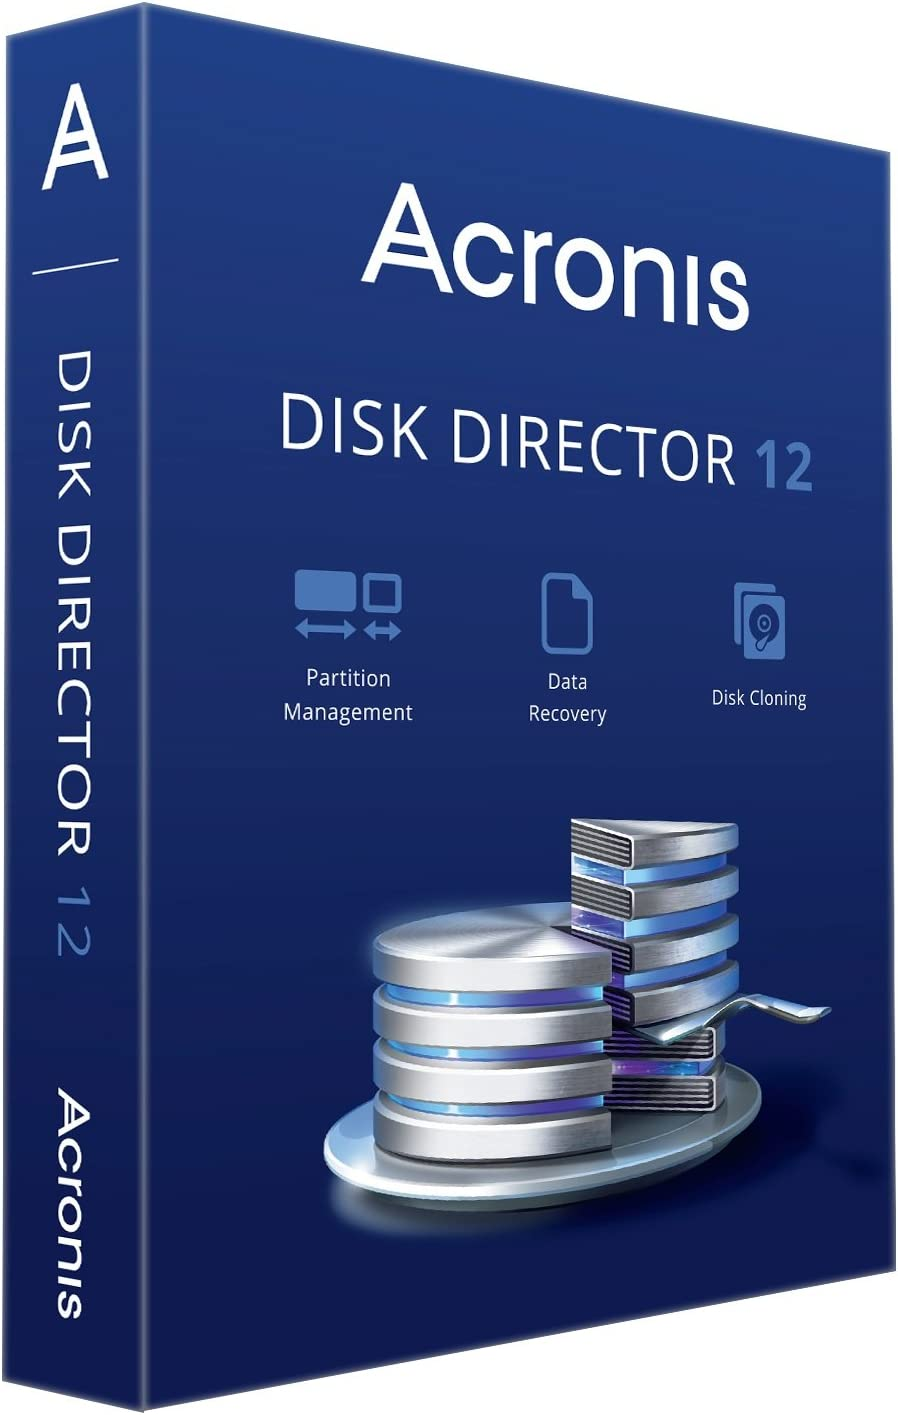 Acronis Disk Director 12 61MTS7e6ArL